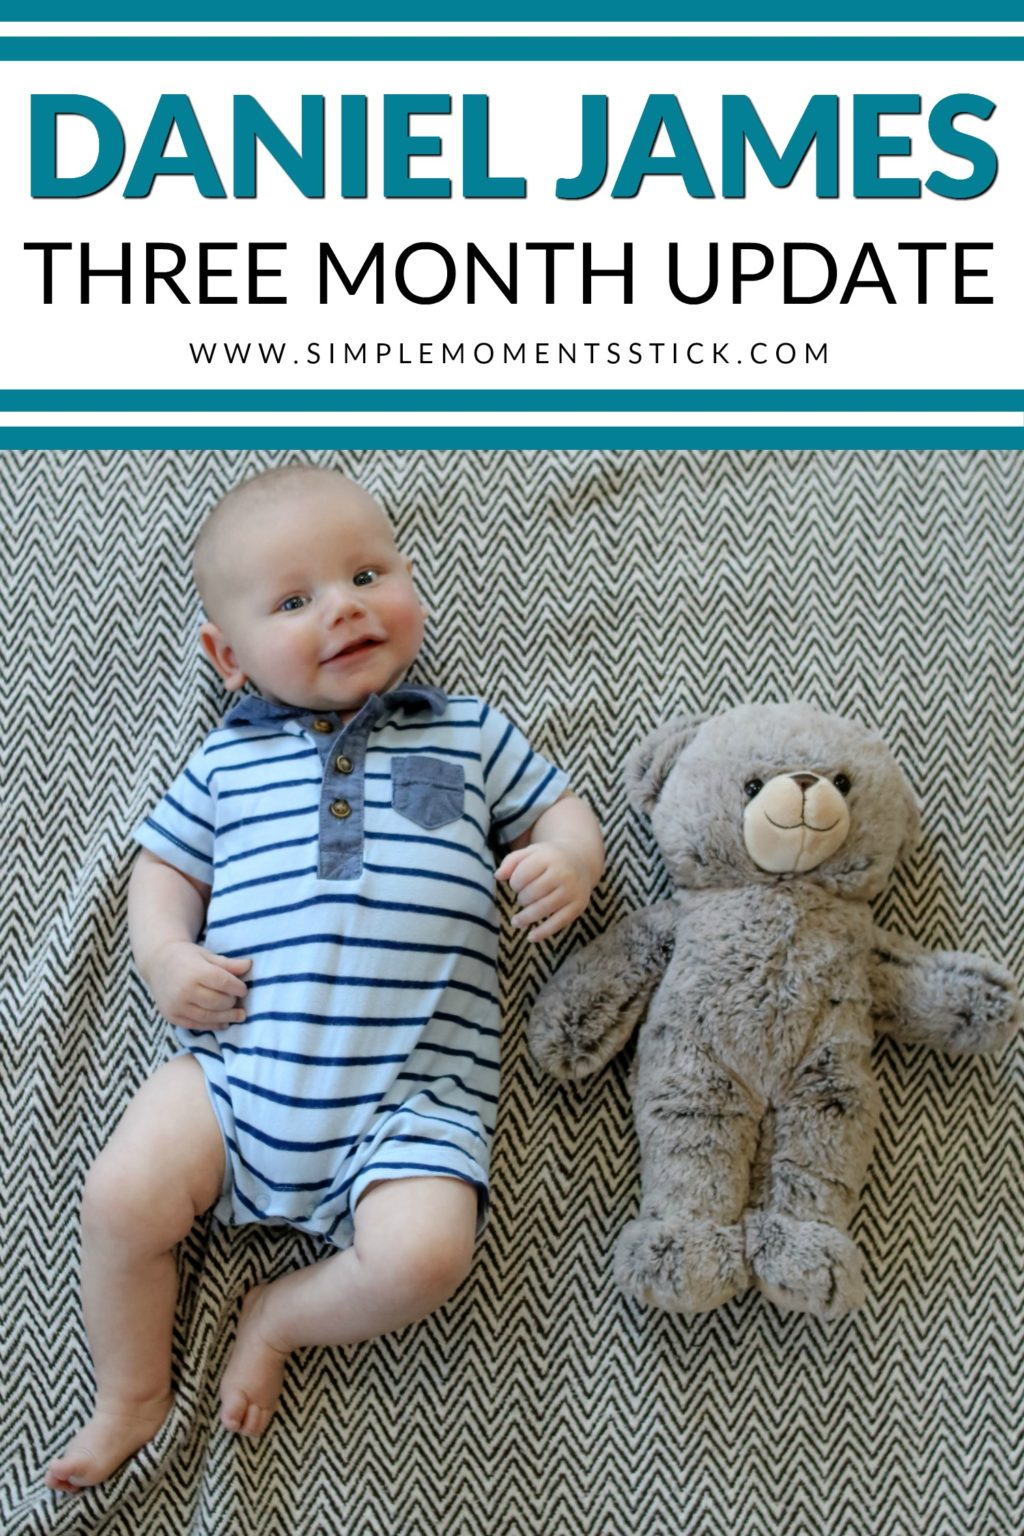 Baby boy laying on blanket next to stuffed bear with text - Daniel James: Three Month Update